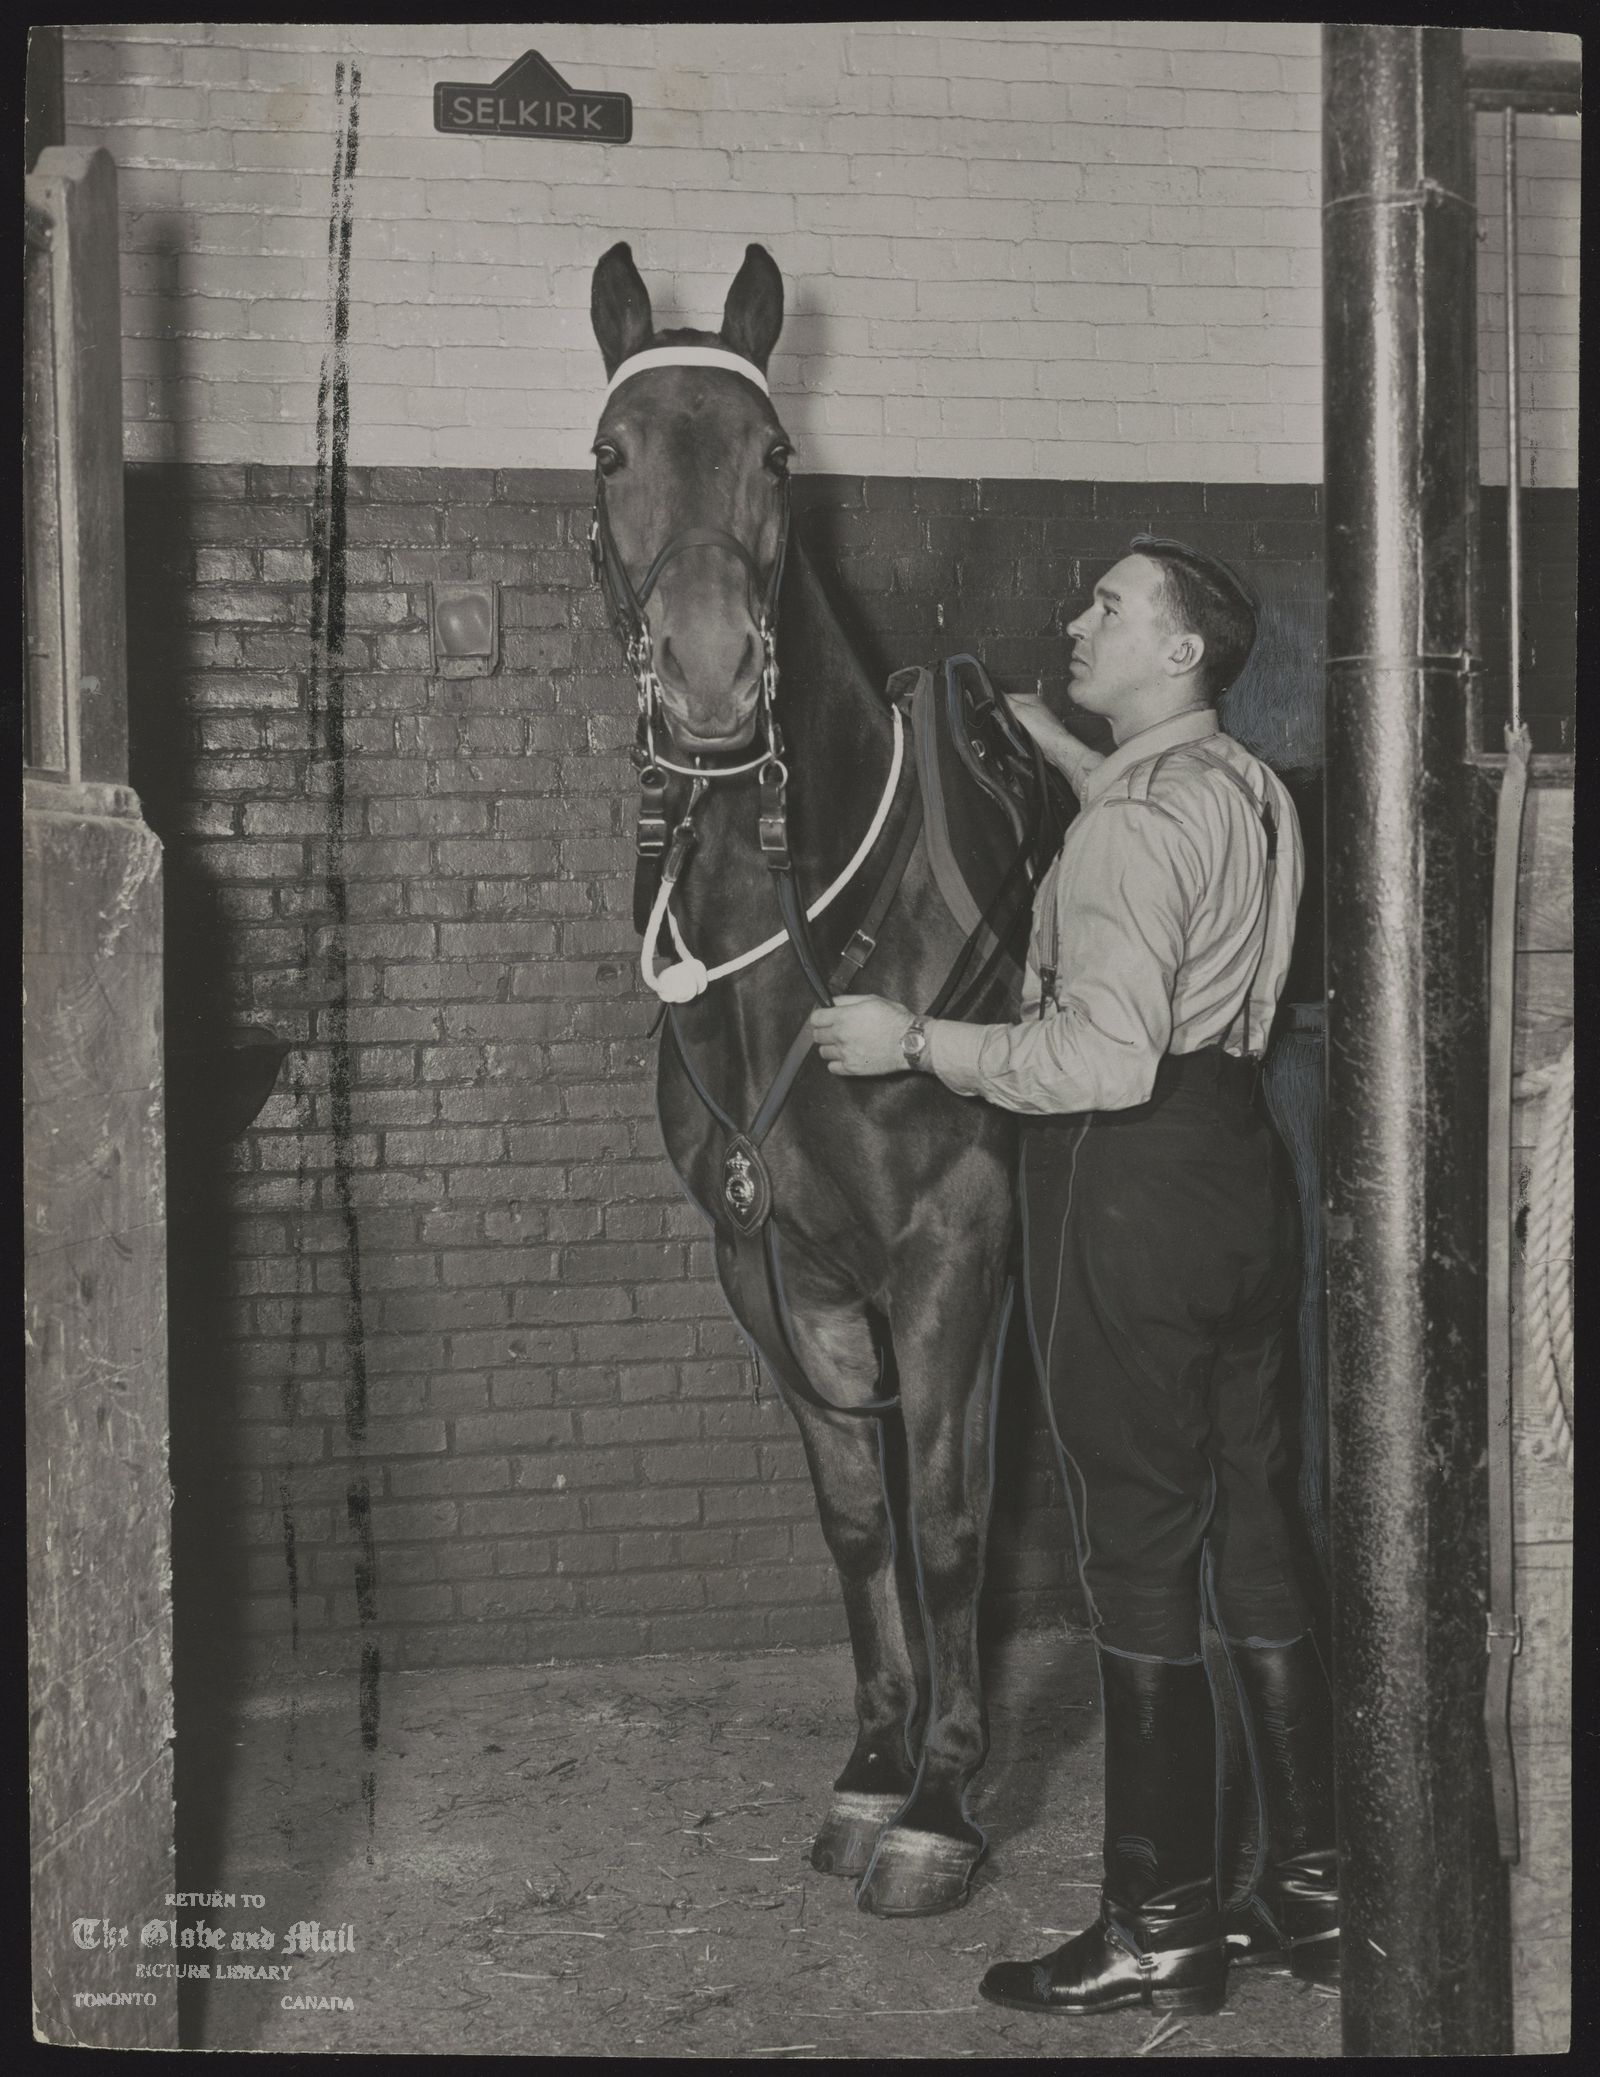 Toronto city Police Dept. Constable Moody puts the bridle on his mount before going out on patrol. Mounted officers perform duties that no car or motorcycle could handle.